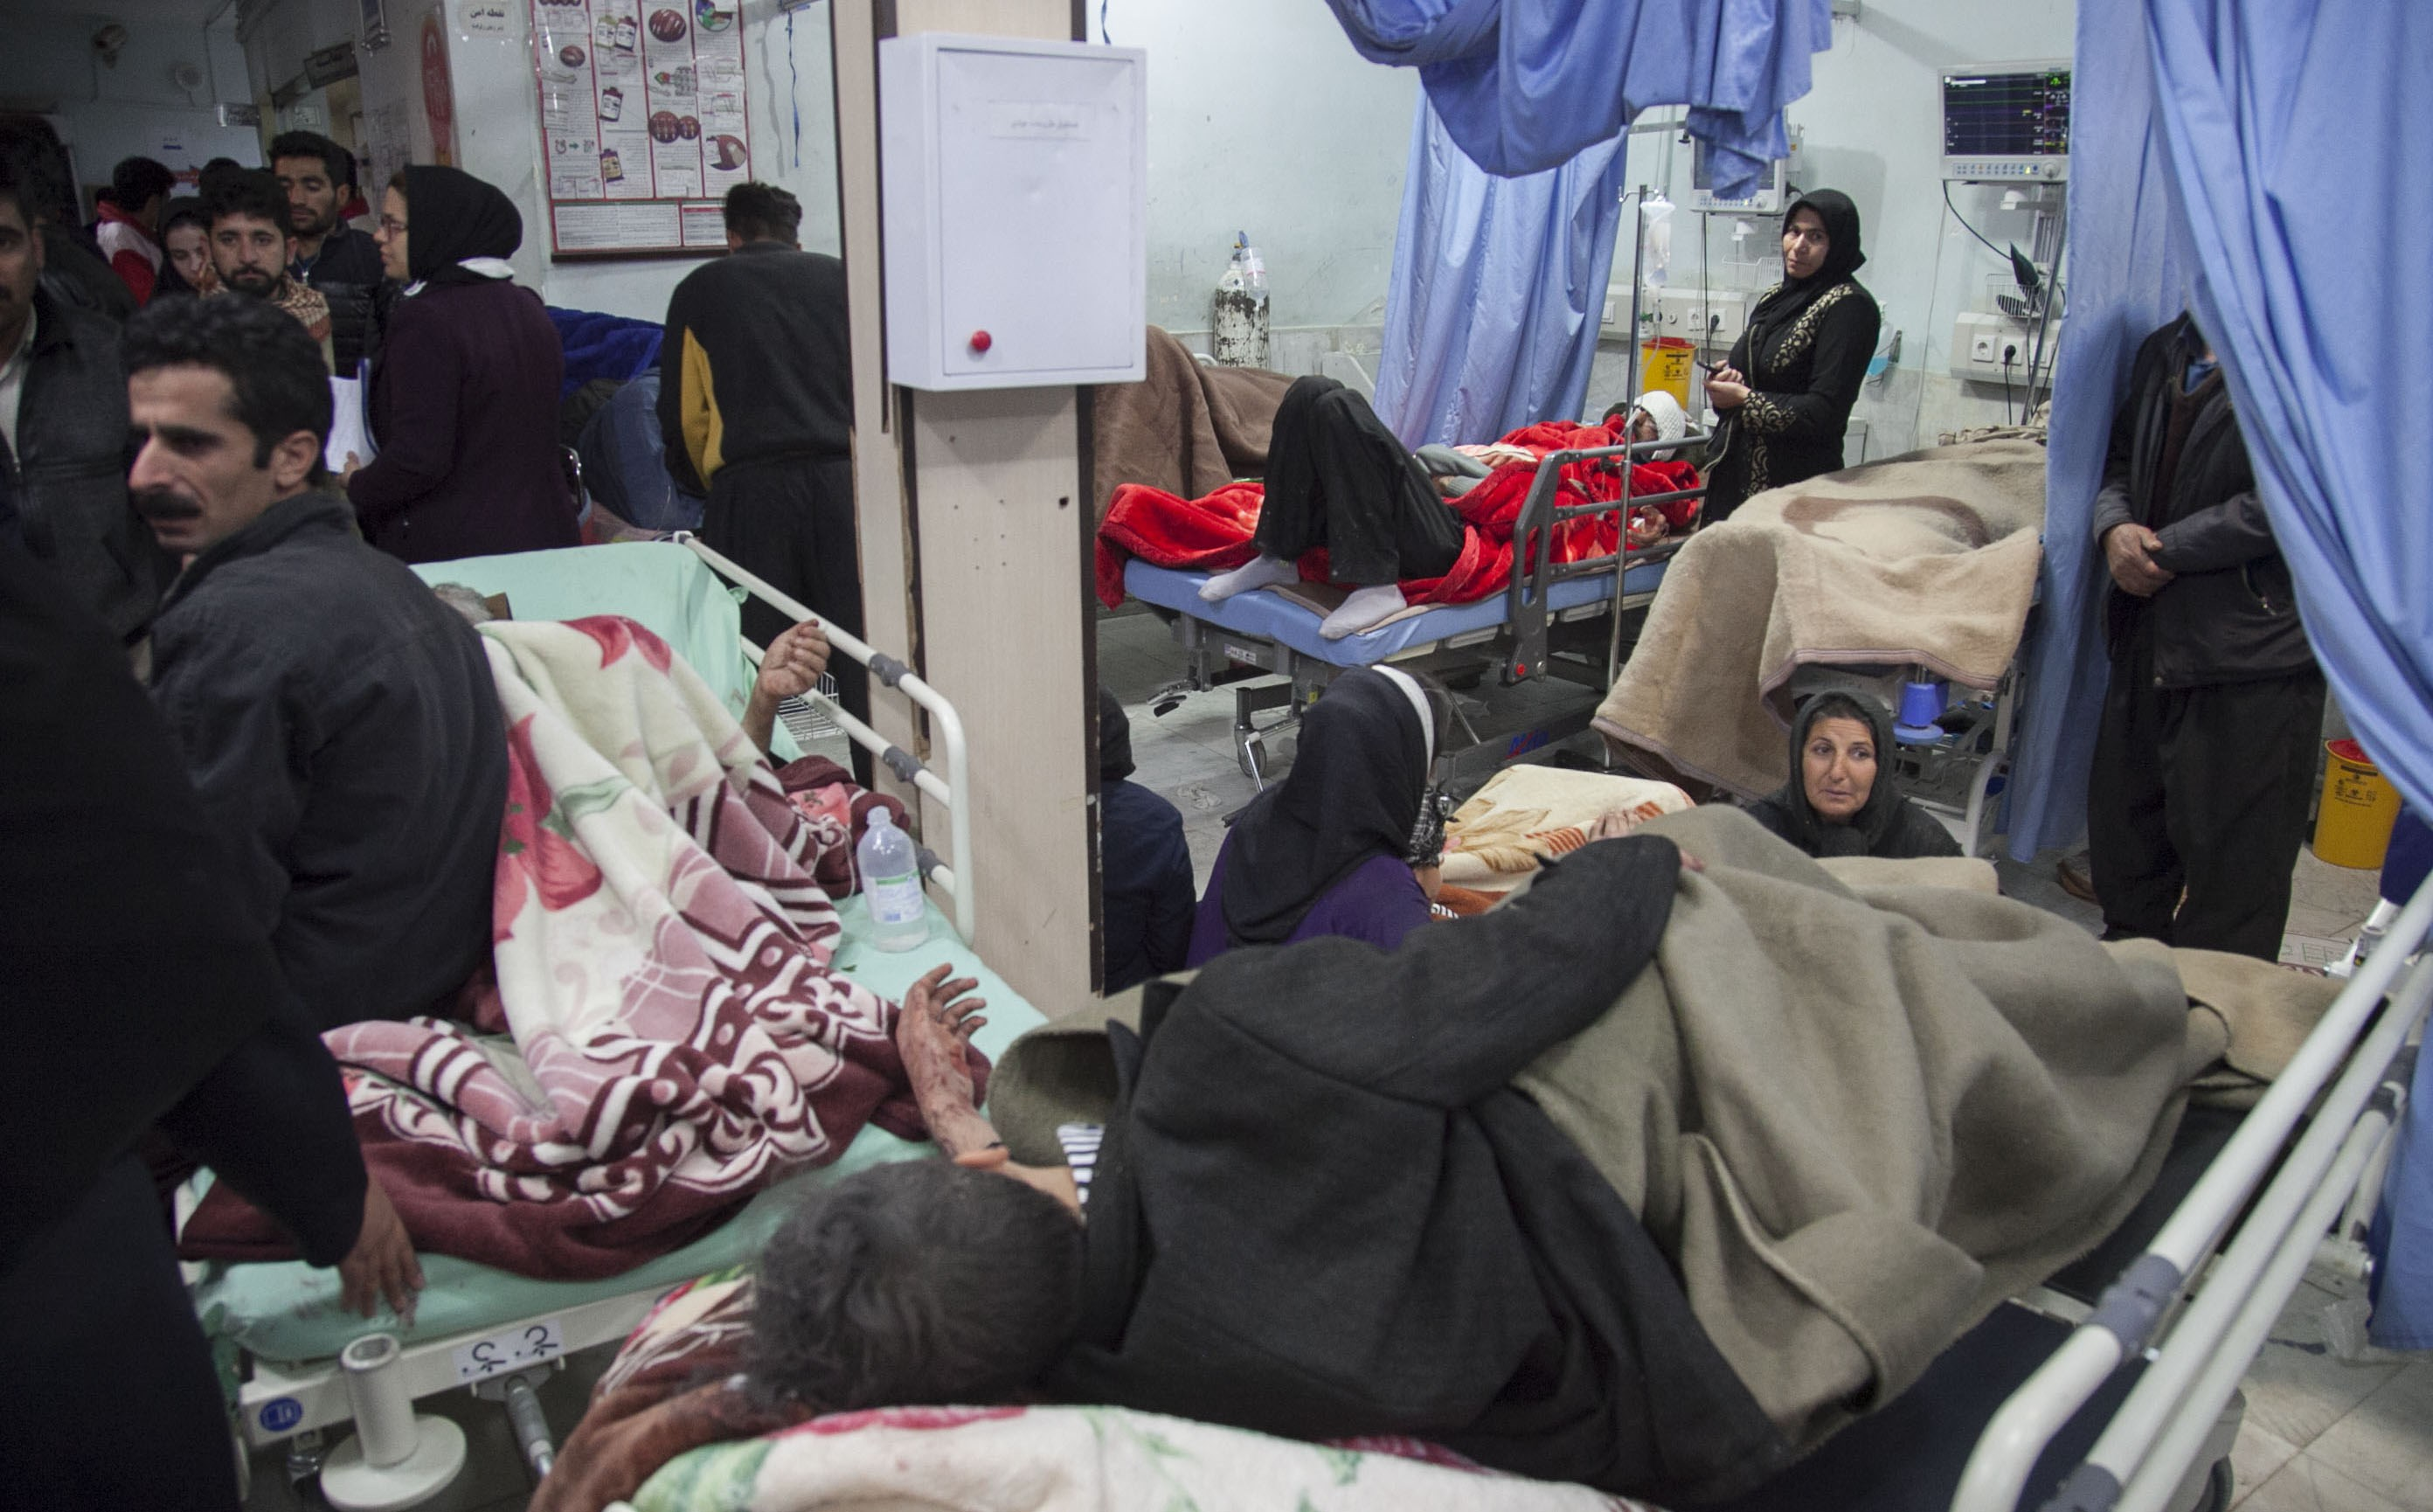 Victims are treated in hospital in Sarpol Zahab. Photo: AFP